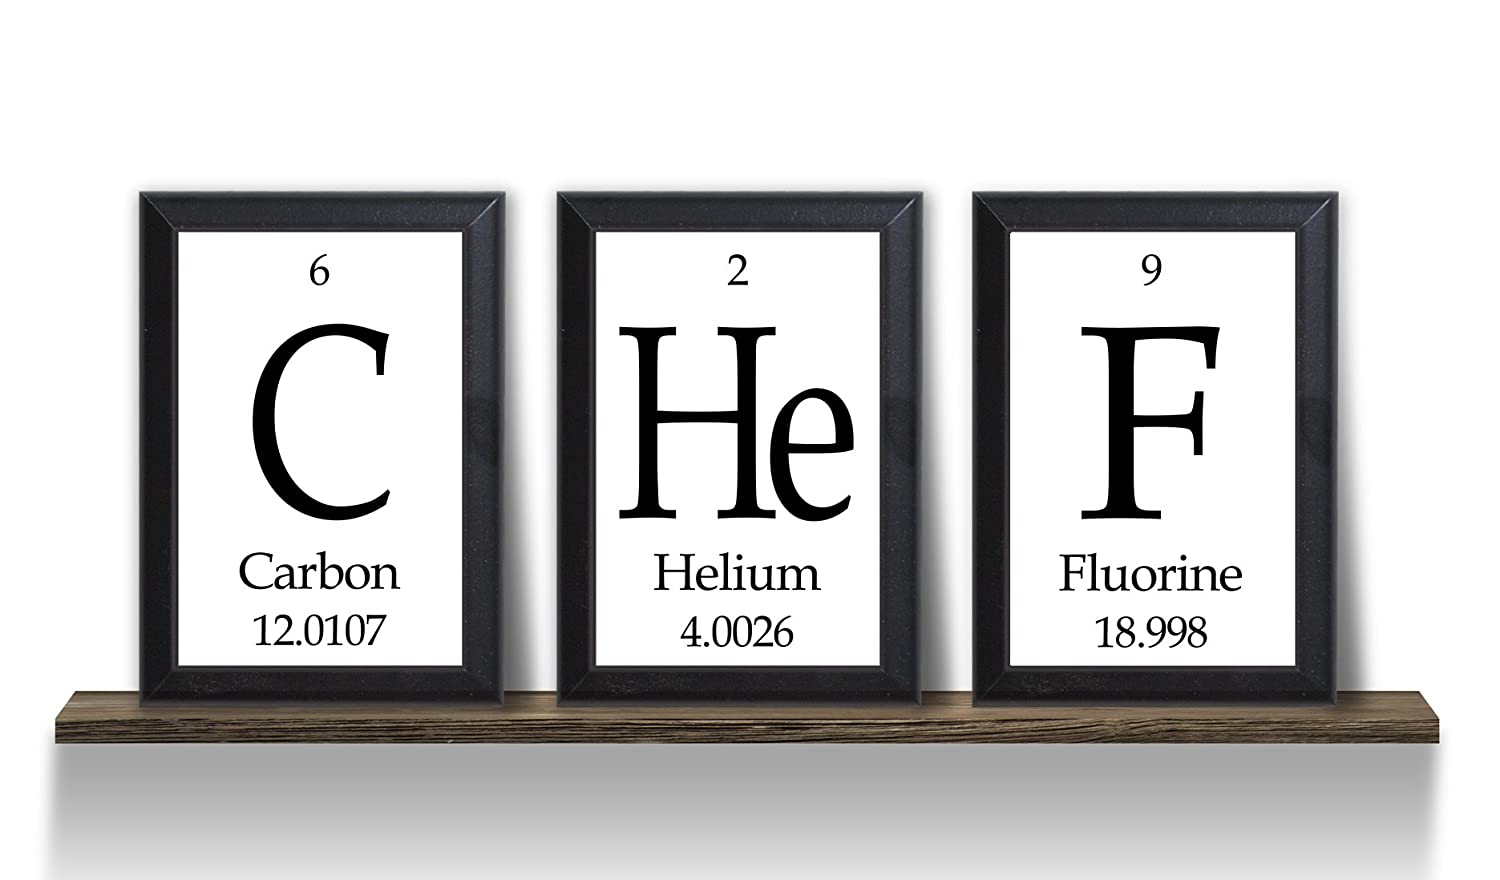 Amazon chef periodic table of elements plaques science amazon chef periodic table of elements plaques science geeky kitchen wall art 3 pc set home kitchen gamestrikefo Images